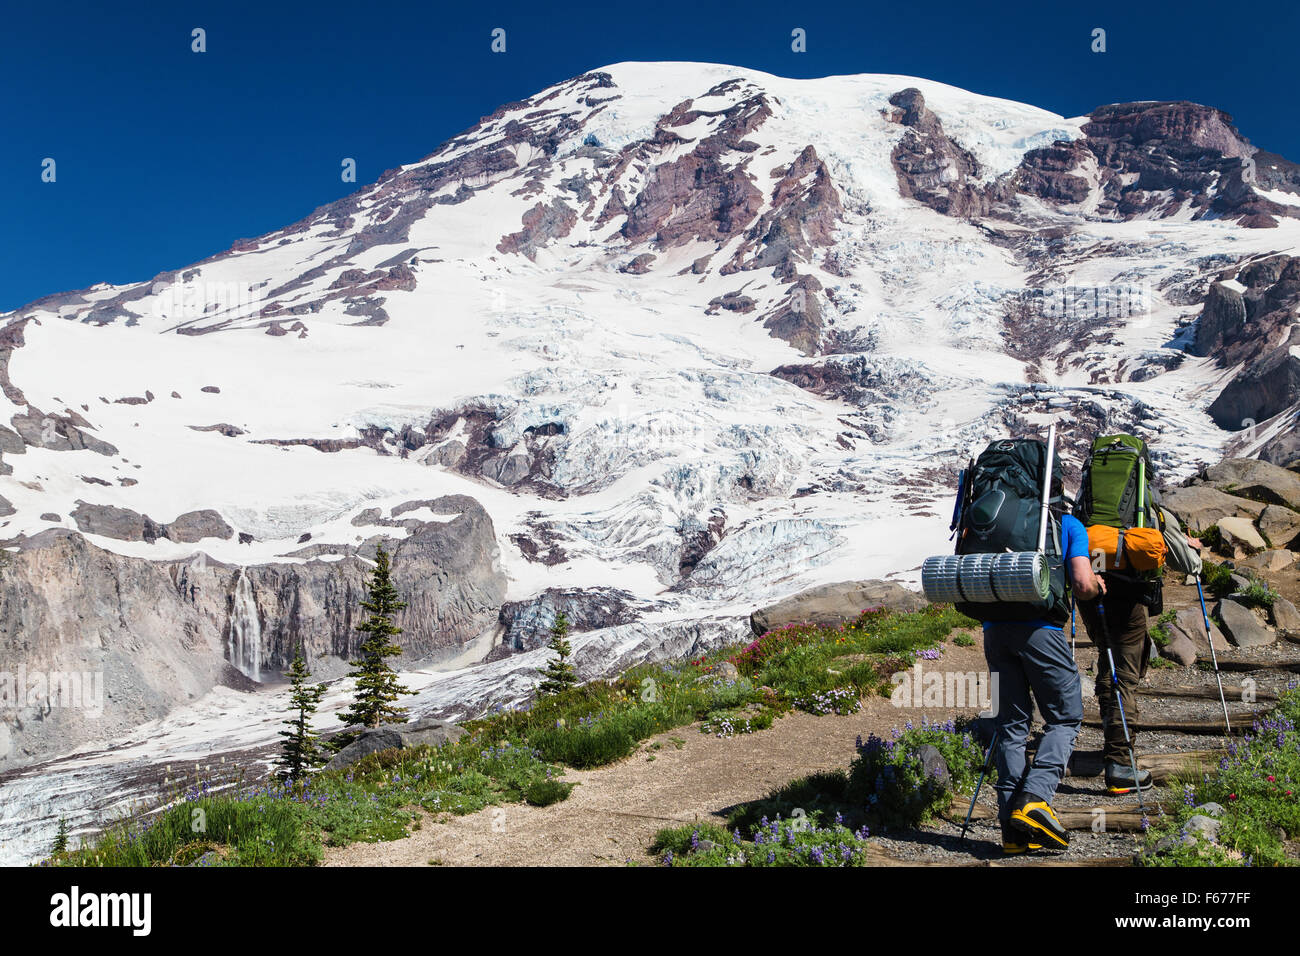 Mt. Ranier,USA. 29th.Jun,2015. Two man hikes through the trail of Mount Ranier.  Tamaki S./Alamy - Stock Image